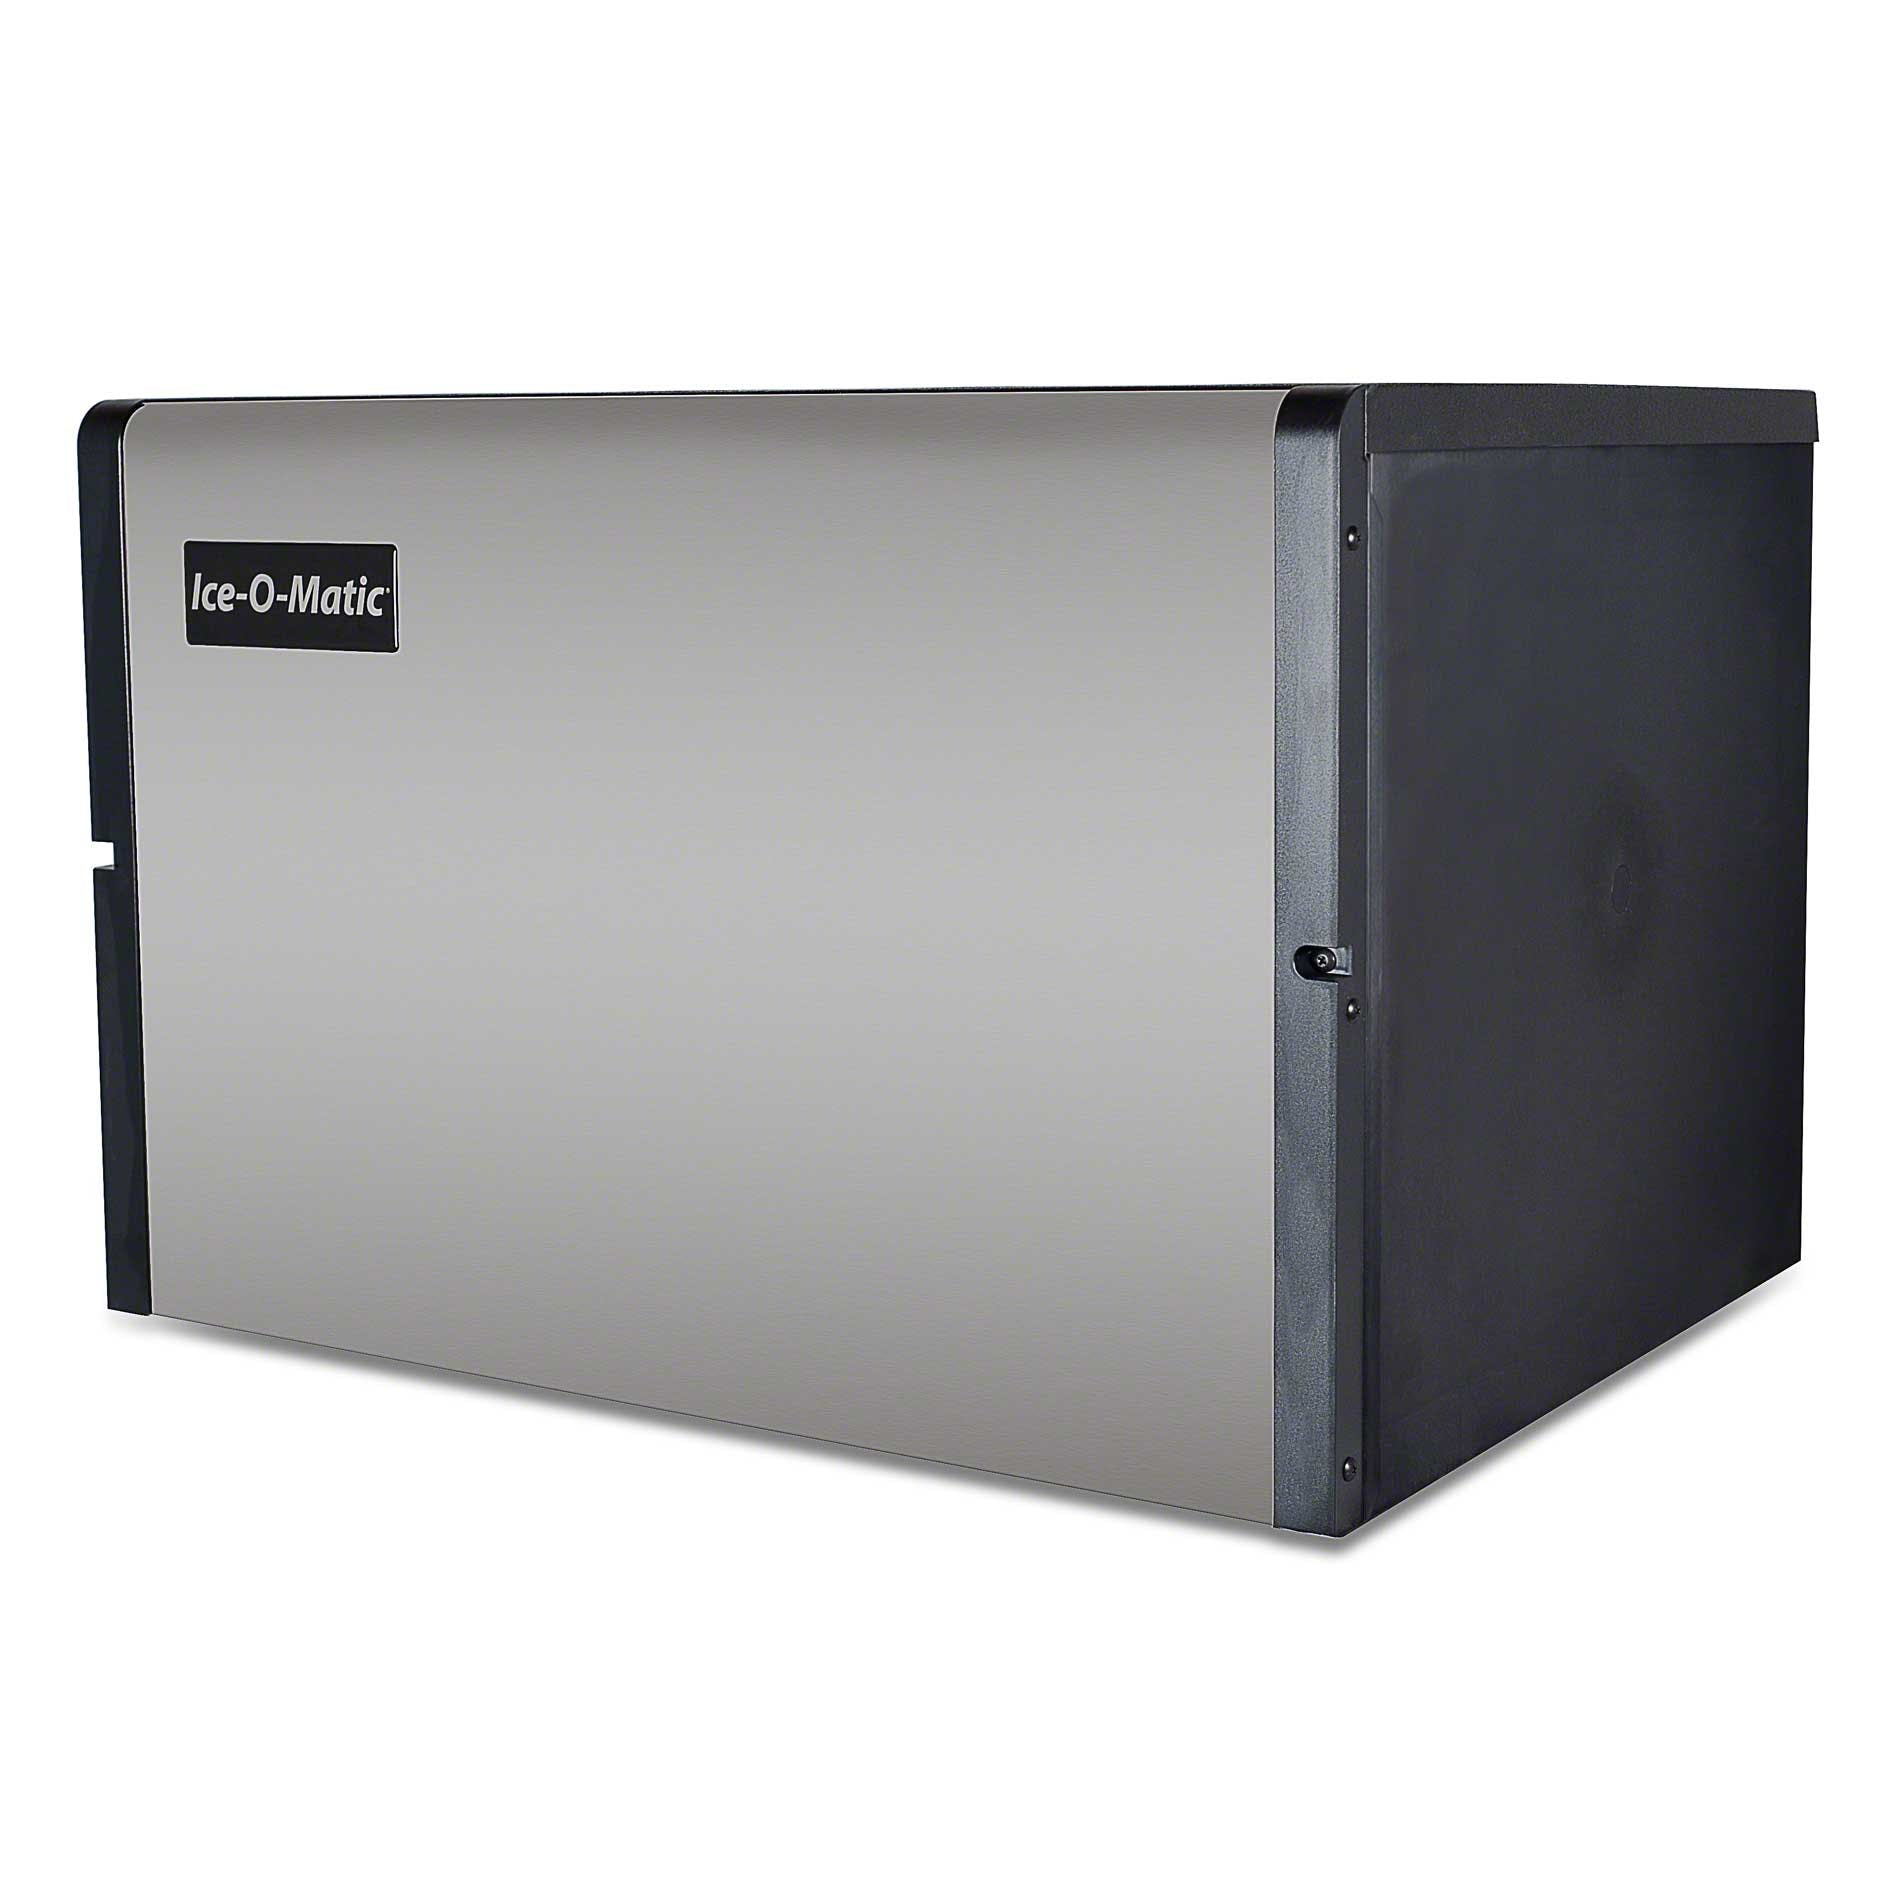 Ice-O-Matic - ICE0500HT 586 lb Half Cube Ice Machine - sold by Food Service Warehouse